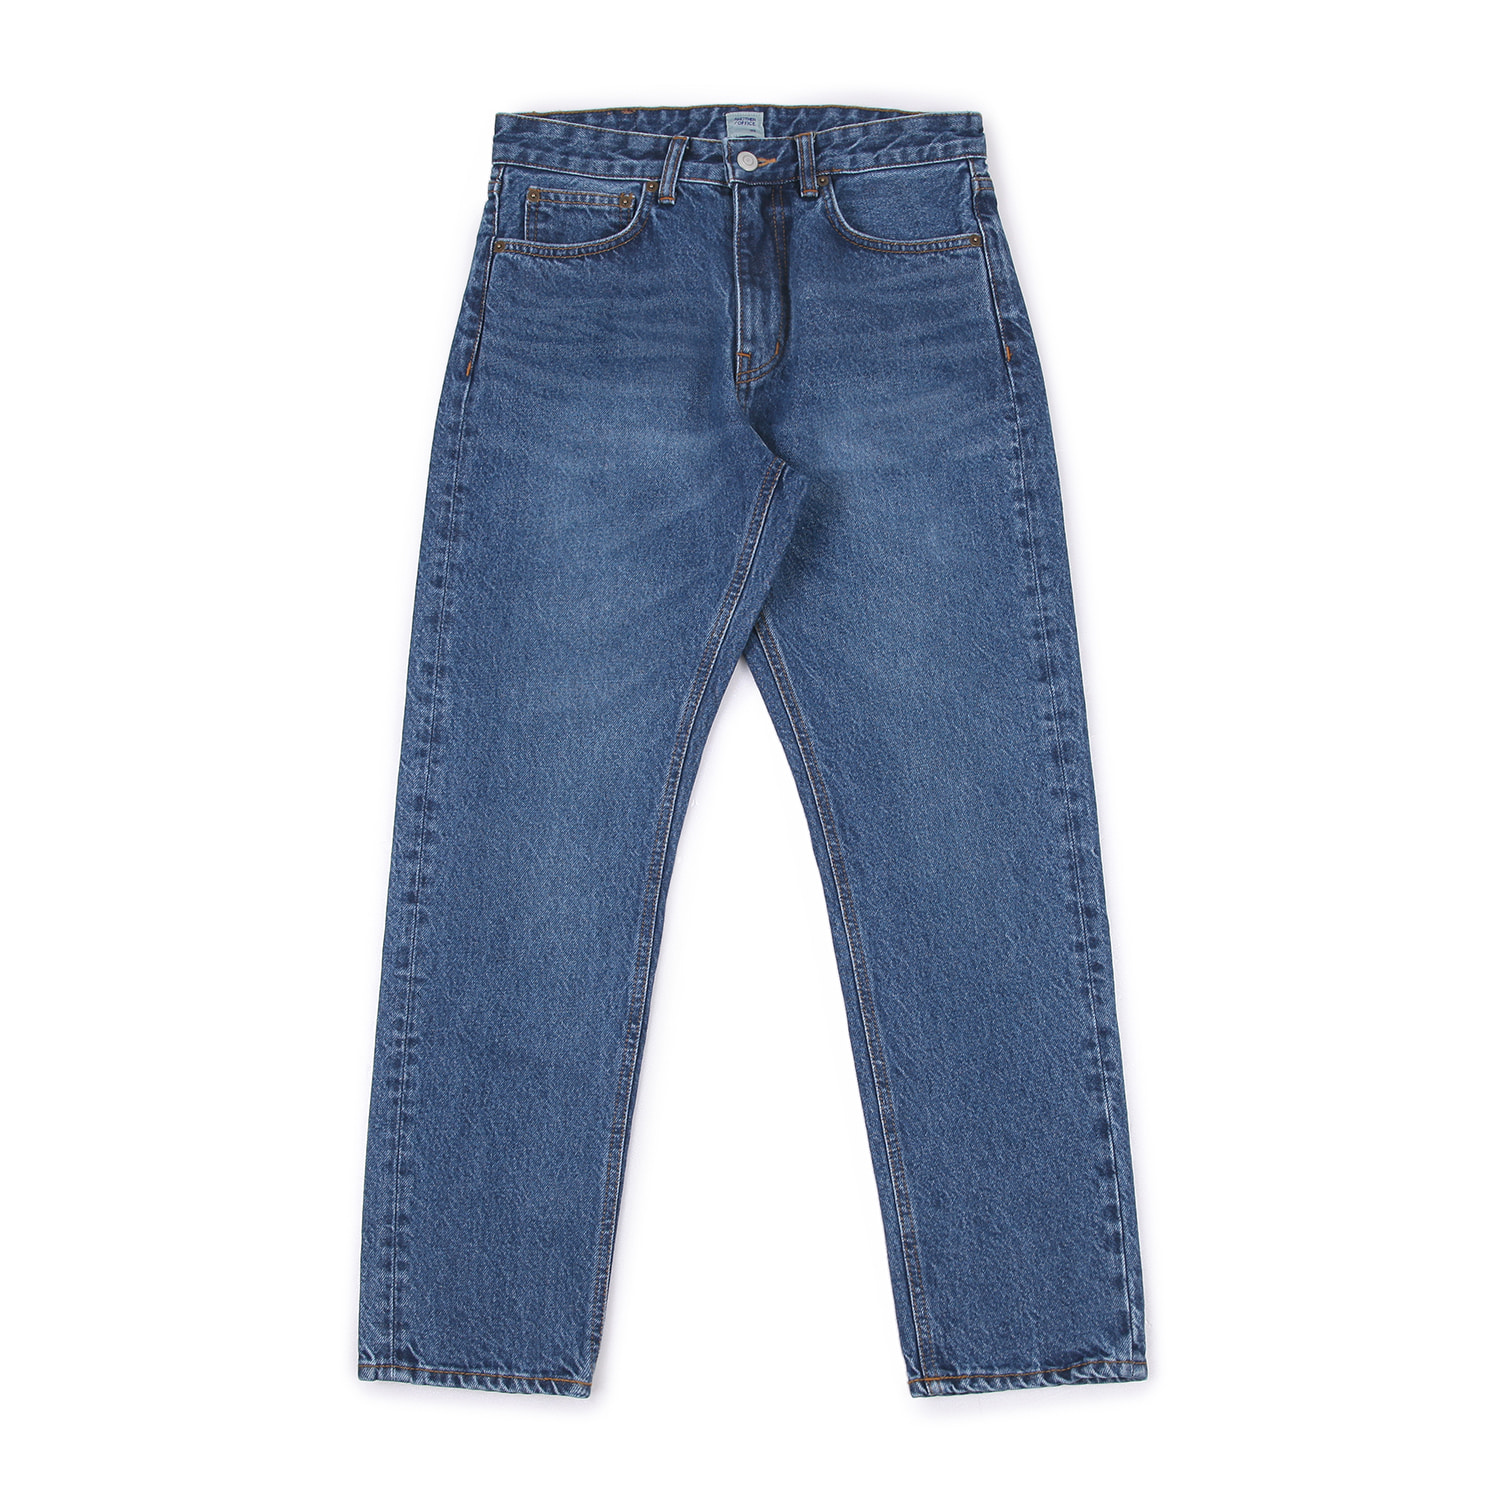 25%OFF_Lifetime Denim (Mid Blue)